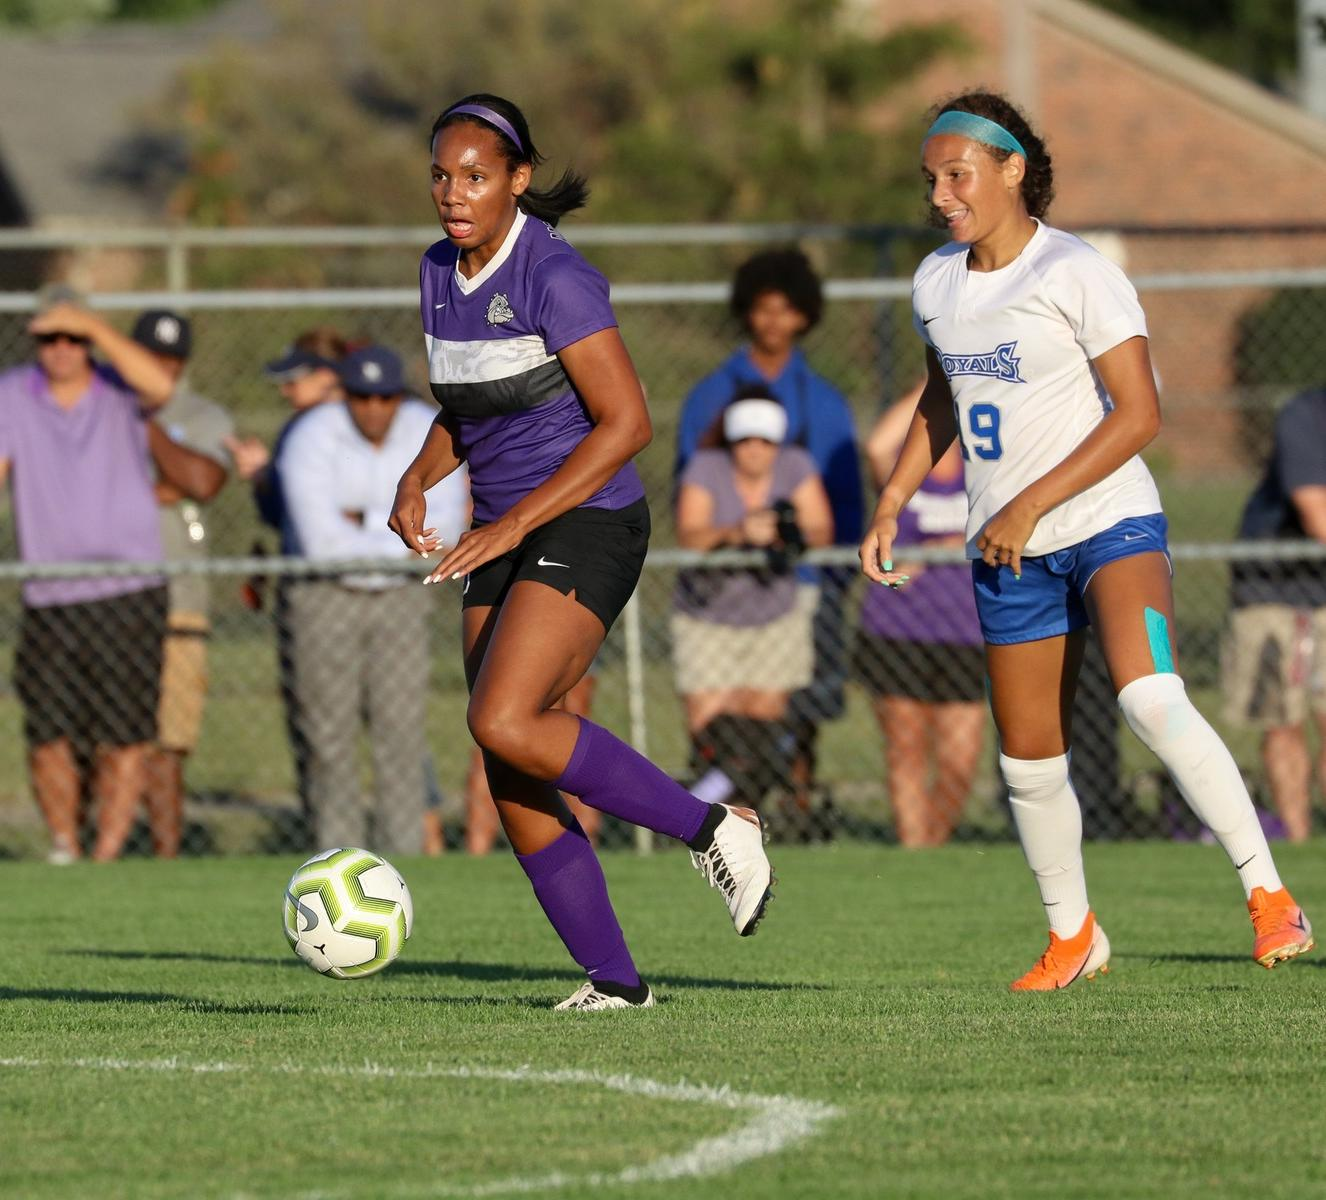 @bhsdogs_gsoccer heads to highly-touted Zionsville Invite